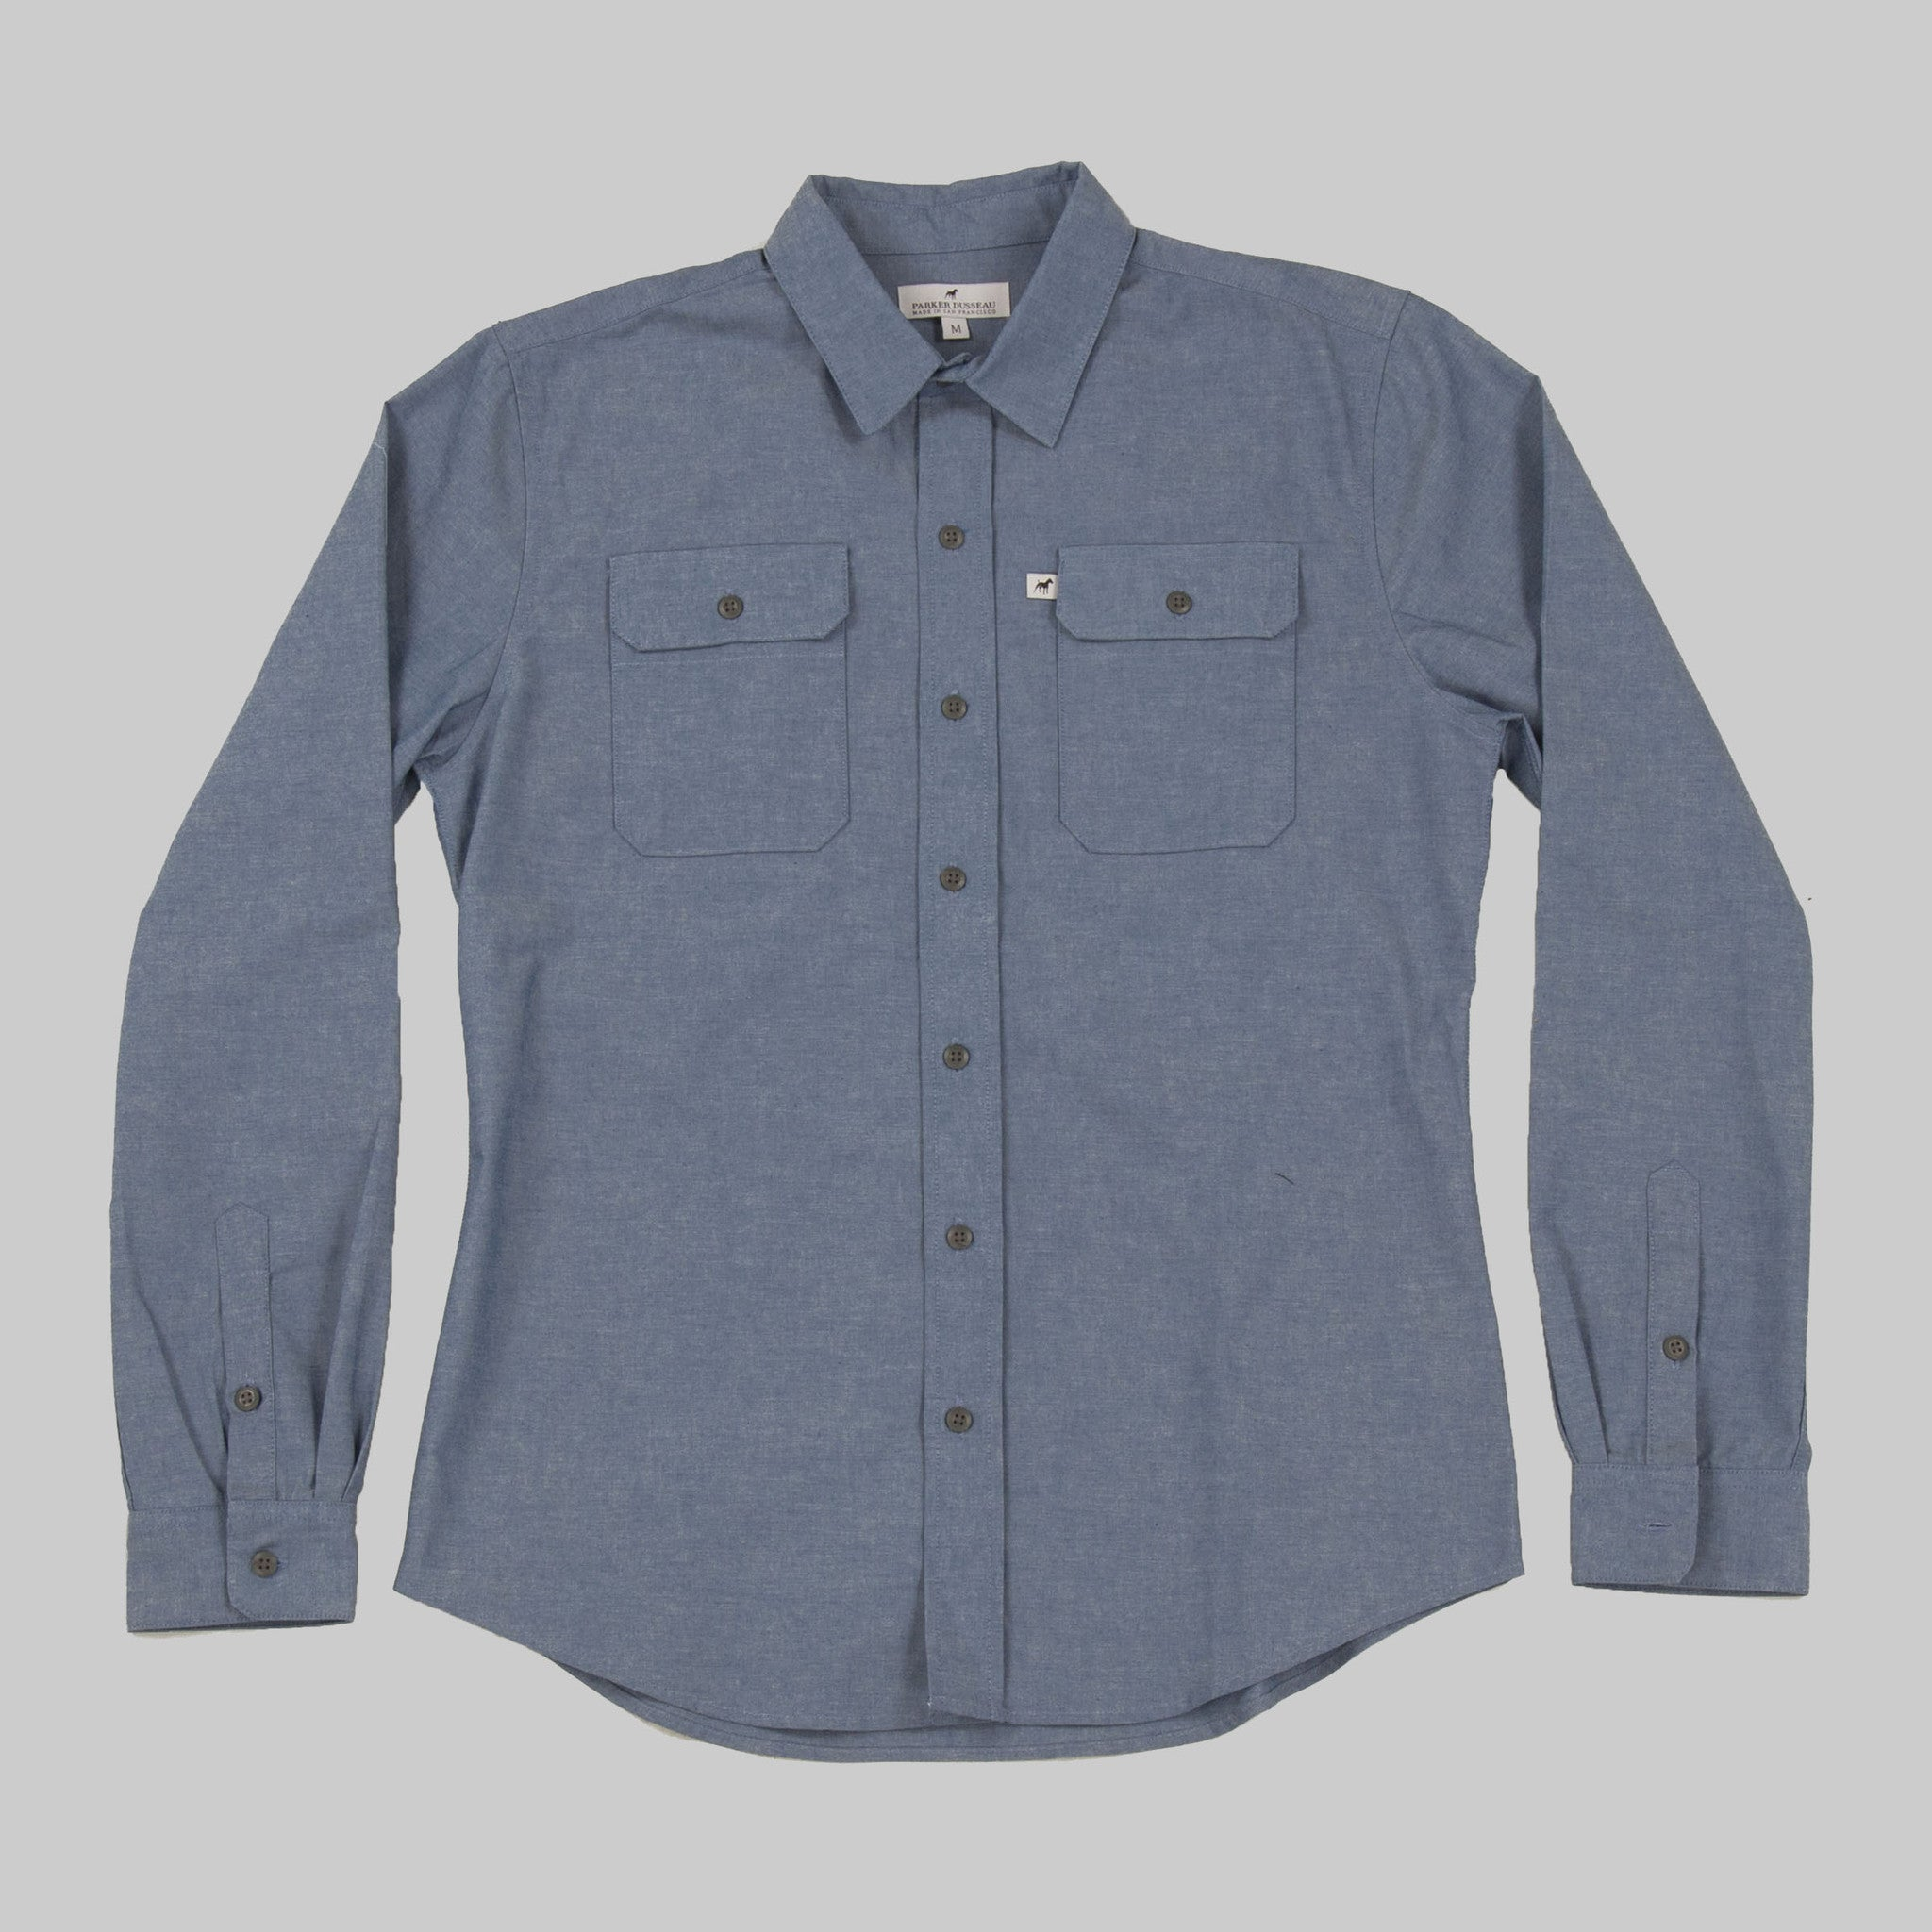 Classic Work Shirt - Indigo Work Shirt- Parker Dusseau : Functional Menswear Essentials for the Always Ready Lifestyle. Based in San Francisco, California